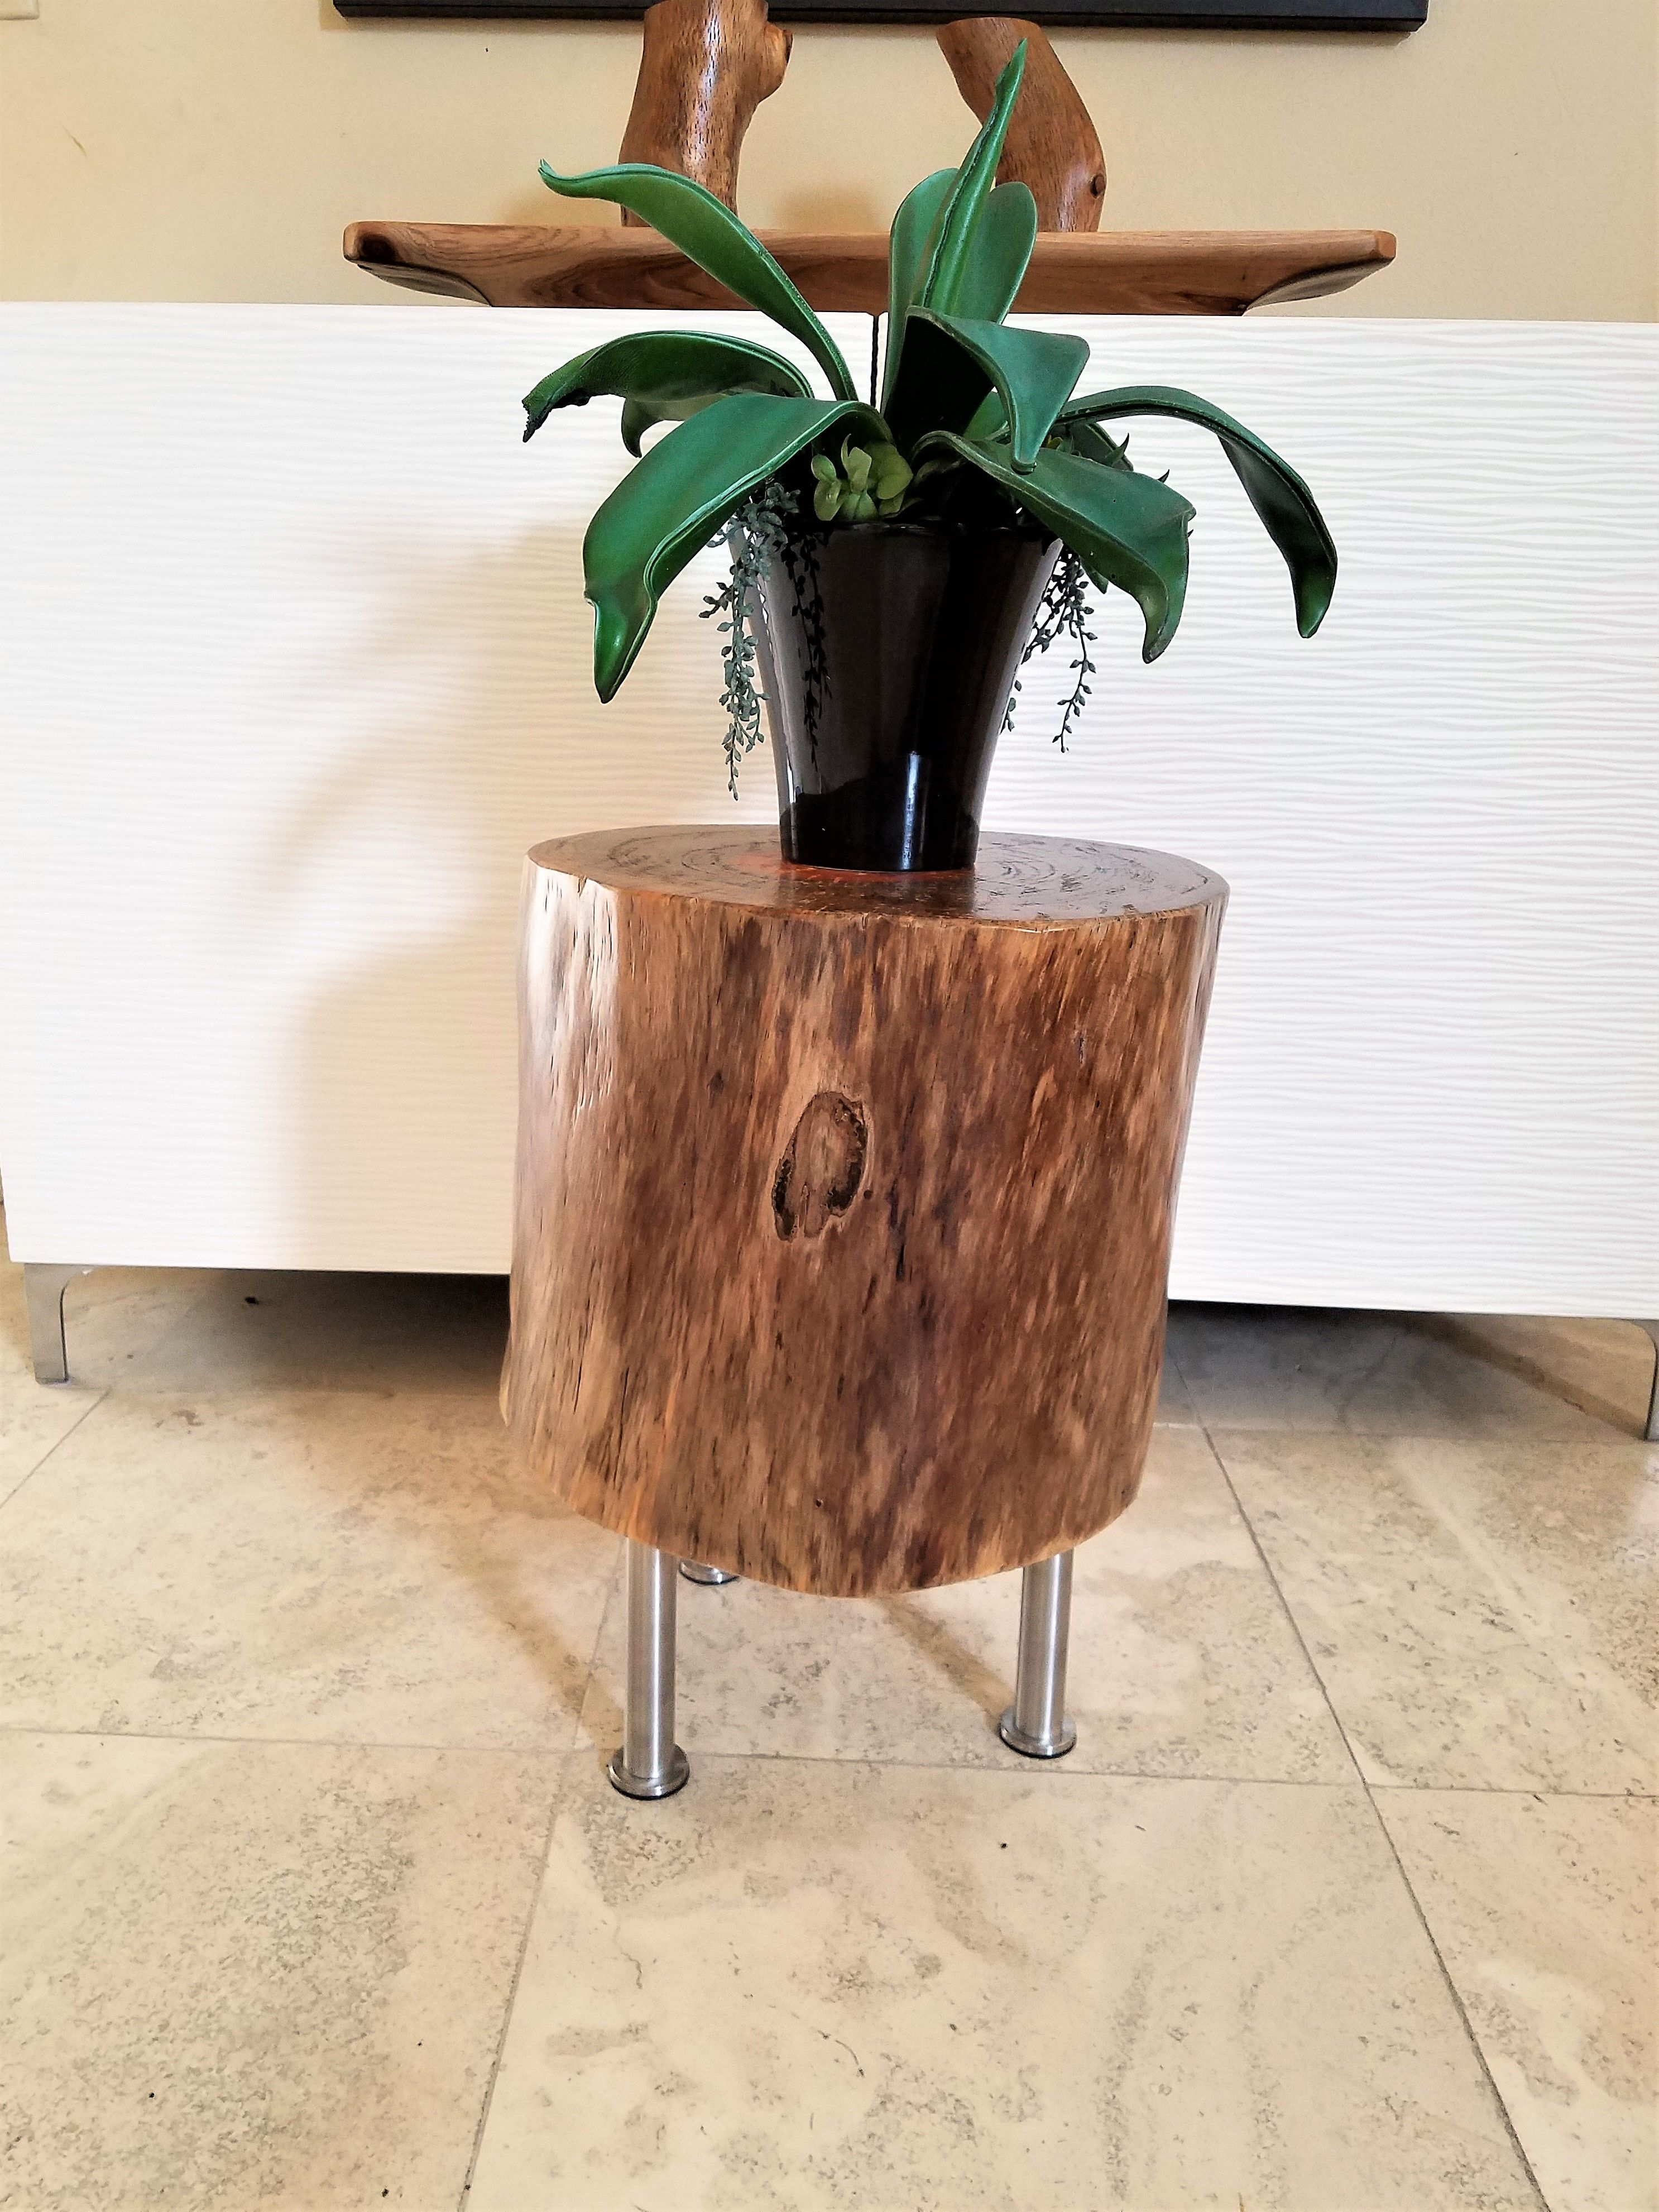 Swell A One Of A Kind Unique Pine Stump Table With Stainless Steel Home Interior And Landscaping Ymoonbapapsignezvosmurscom